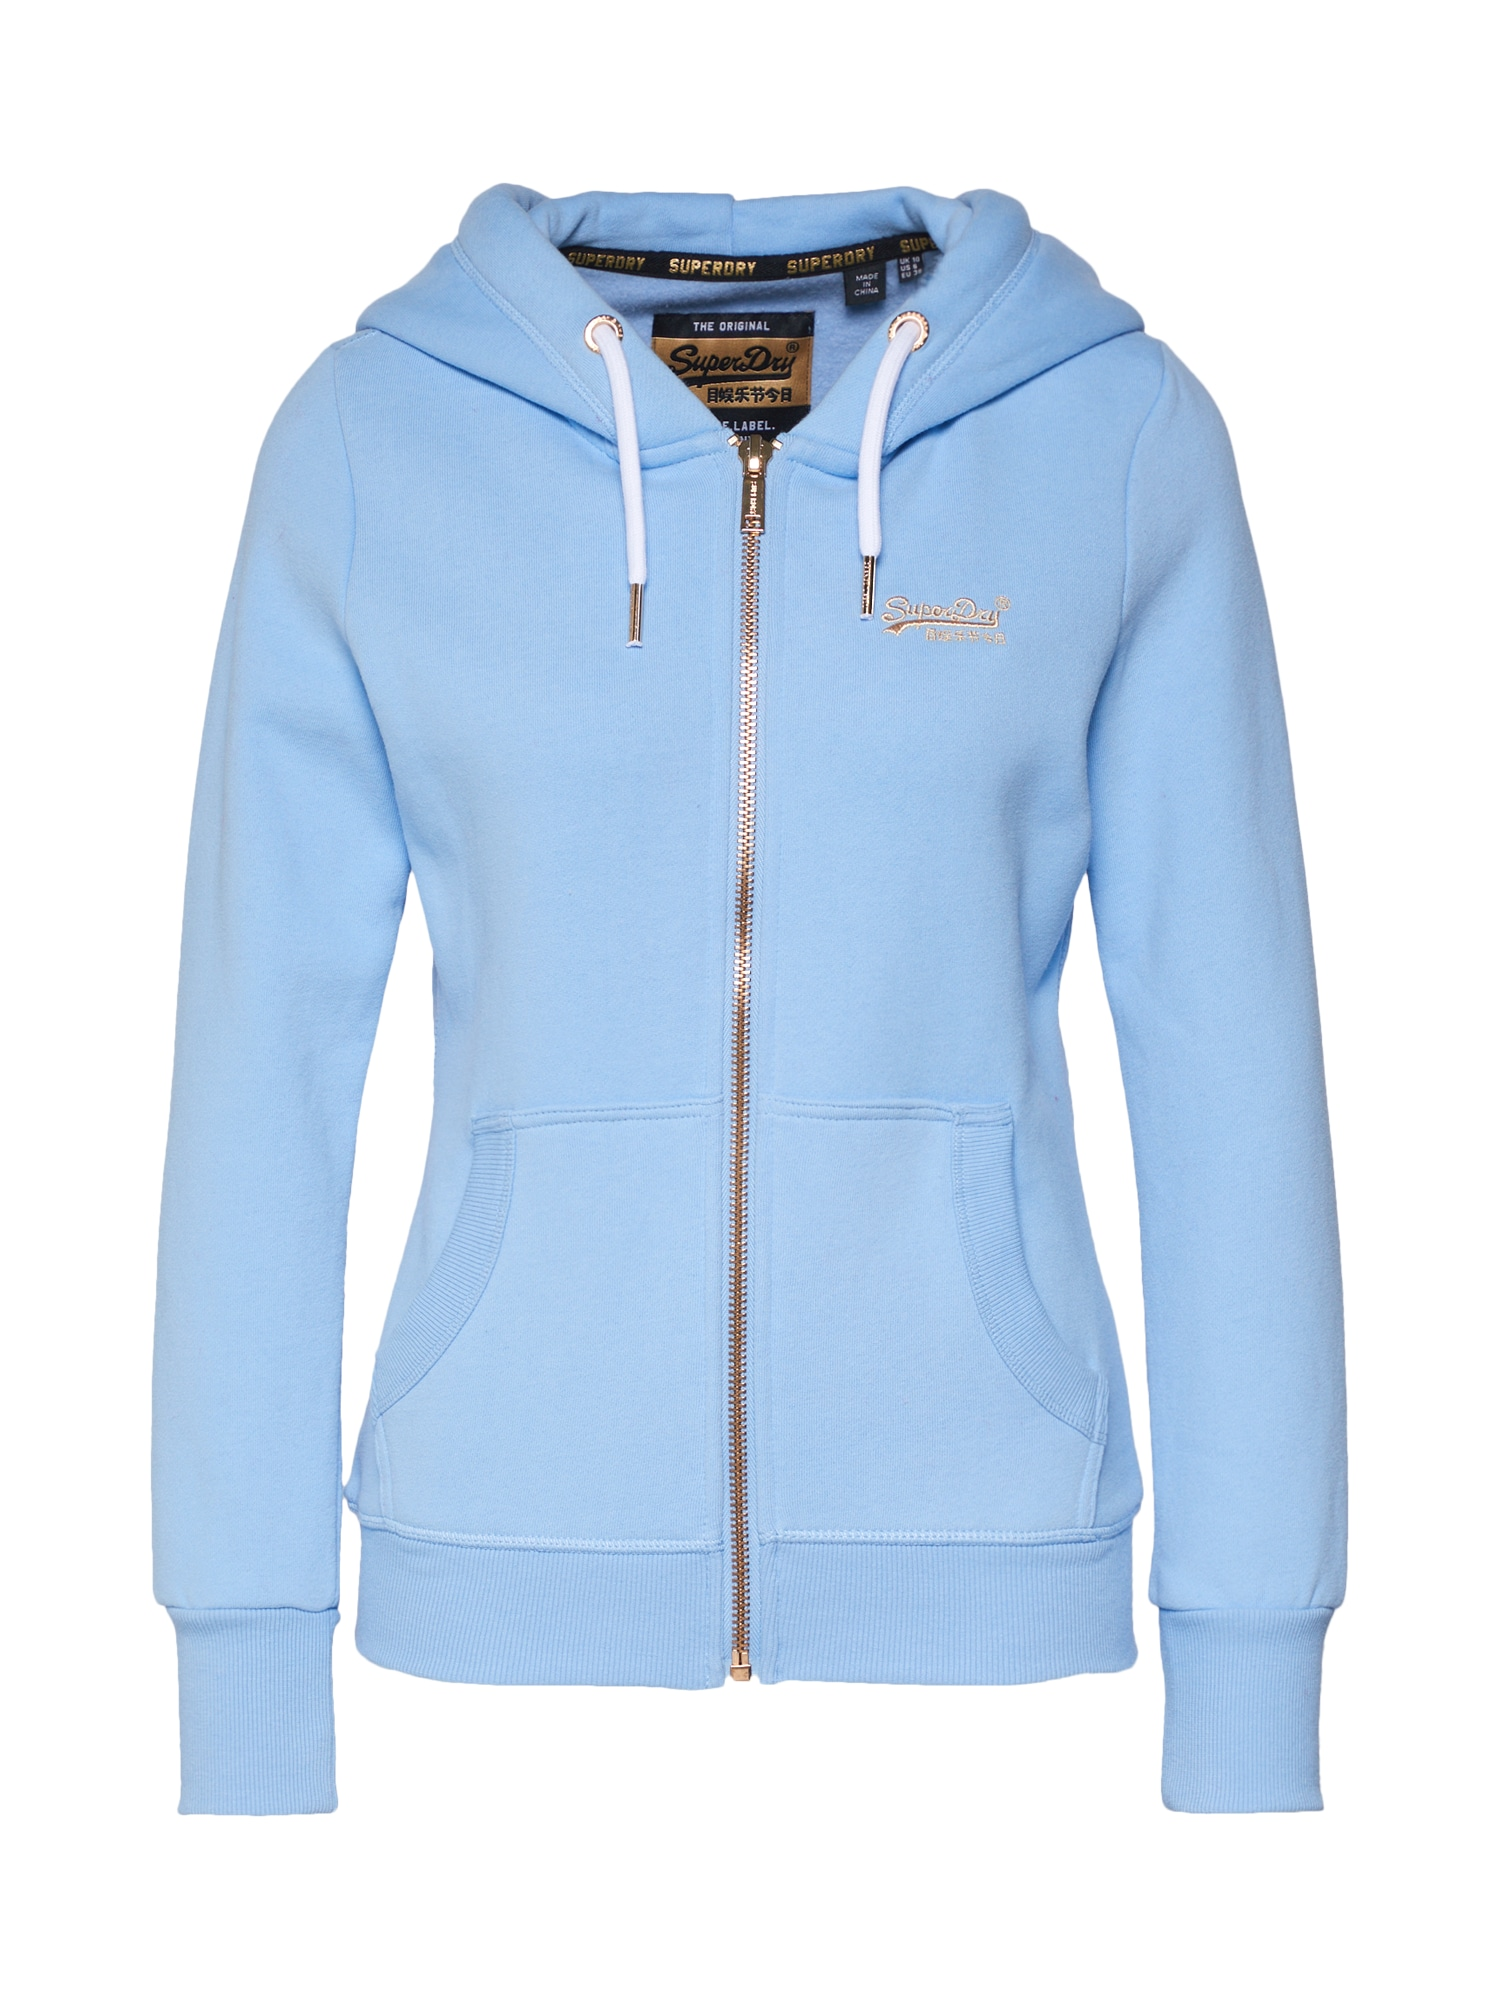 Mikina s kapucí ORANGE LABEL ELITE ZIPHOOD světlemodrá Superdry